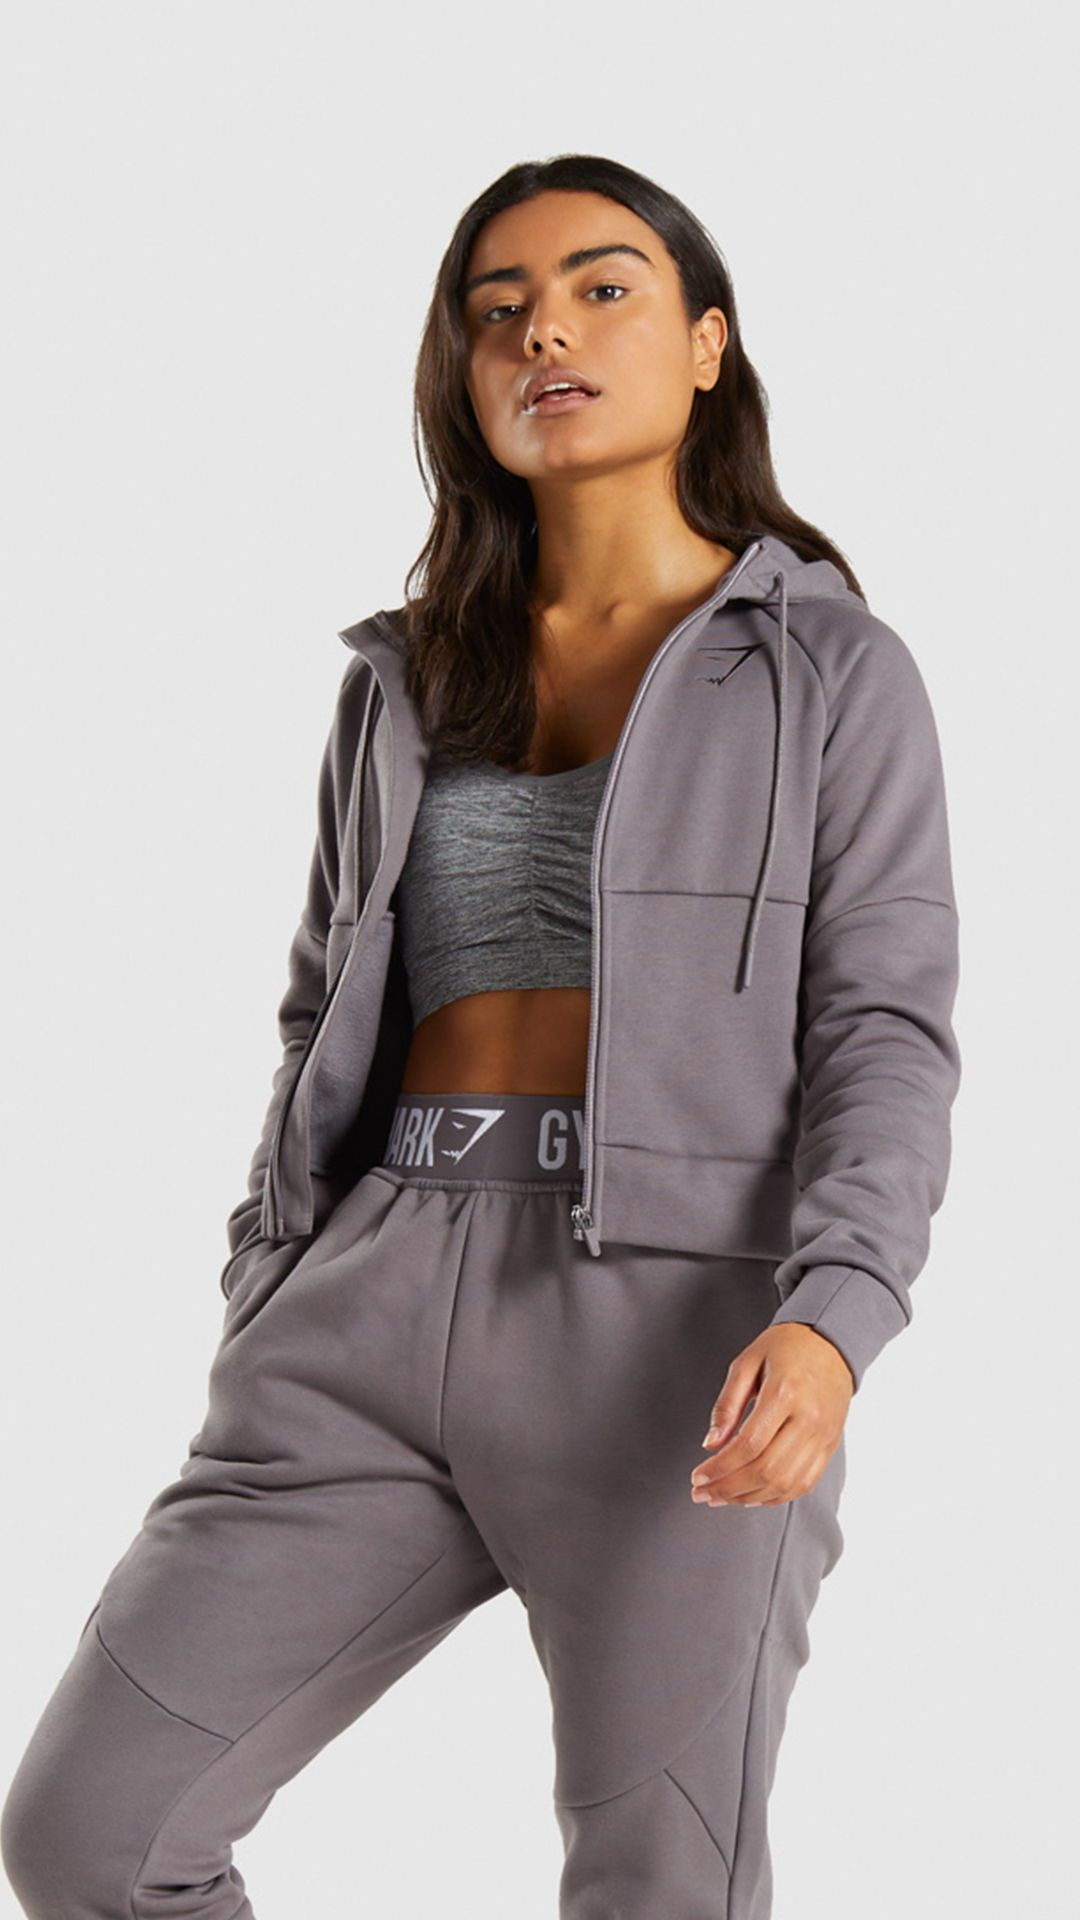 193ab38b9d029 Push and pull to your limit. The Comfy Tracksuit Zip Top gives you full  freedom to conquer your workout. Throw it over on your commute or keep warm  and ...